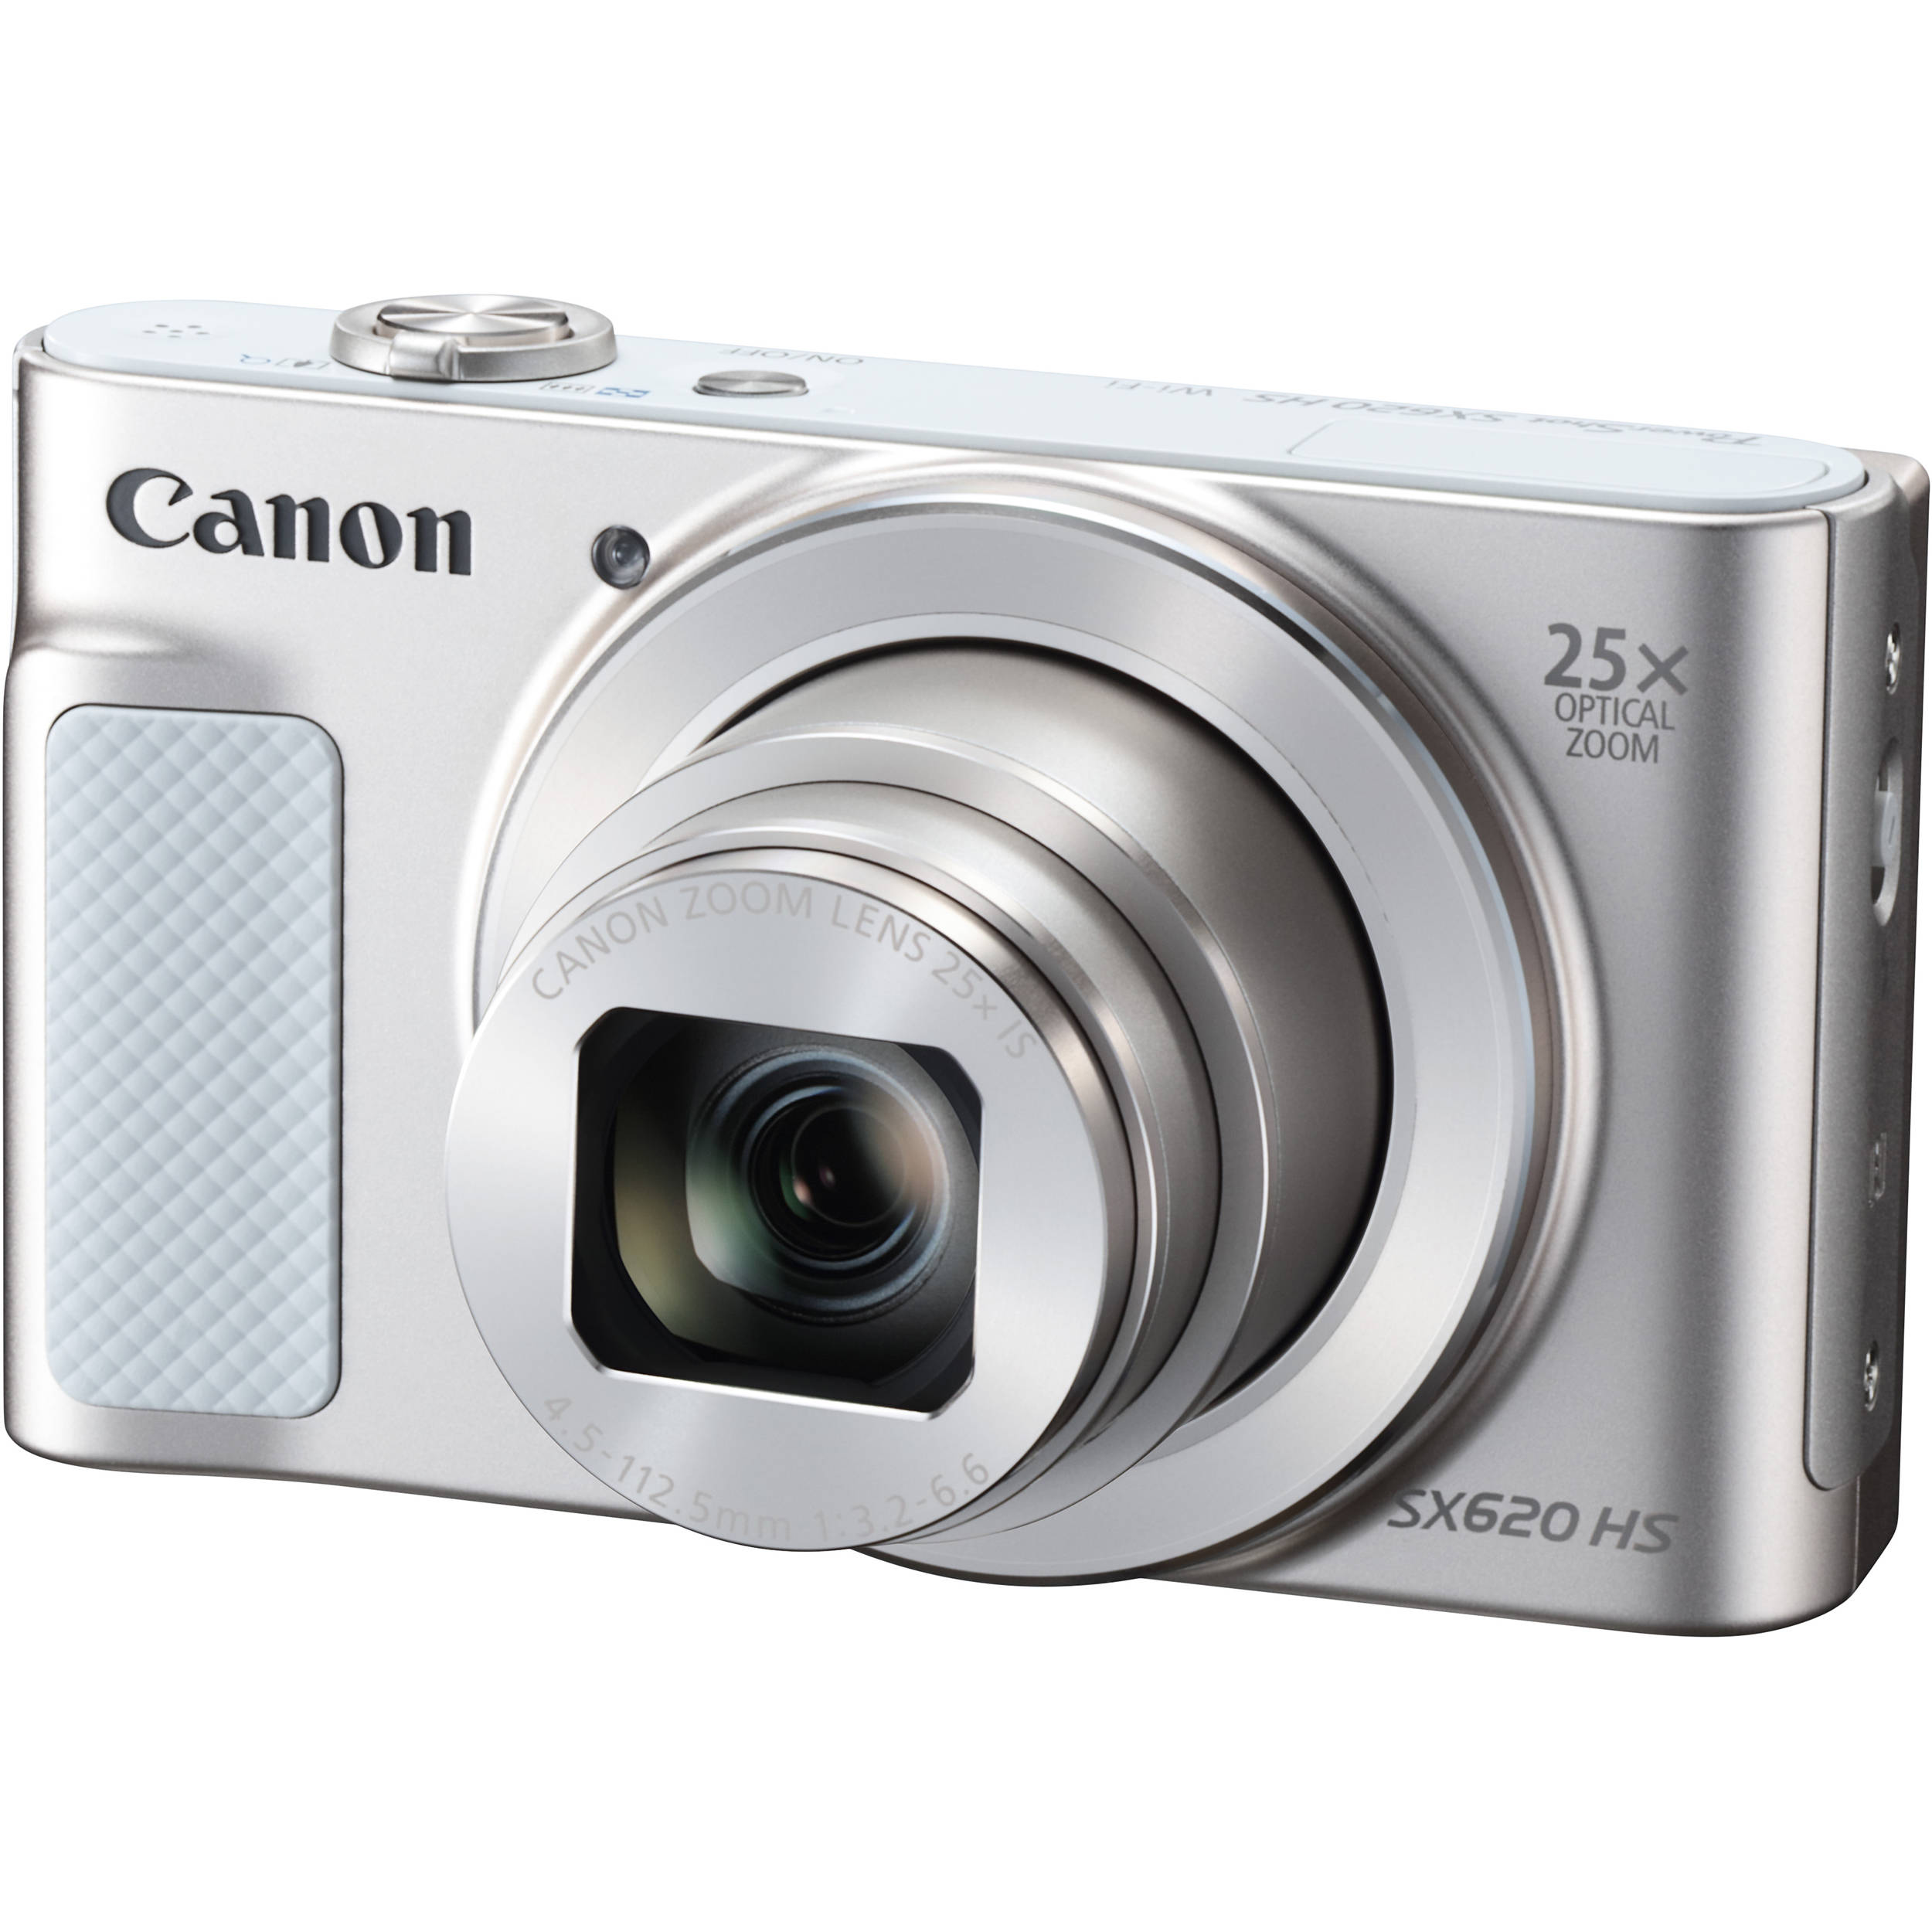 how to connect a canon powershot sx620 to computer